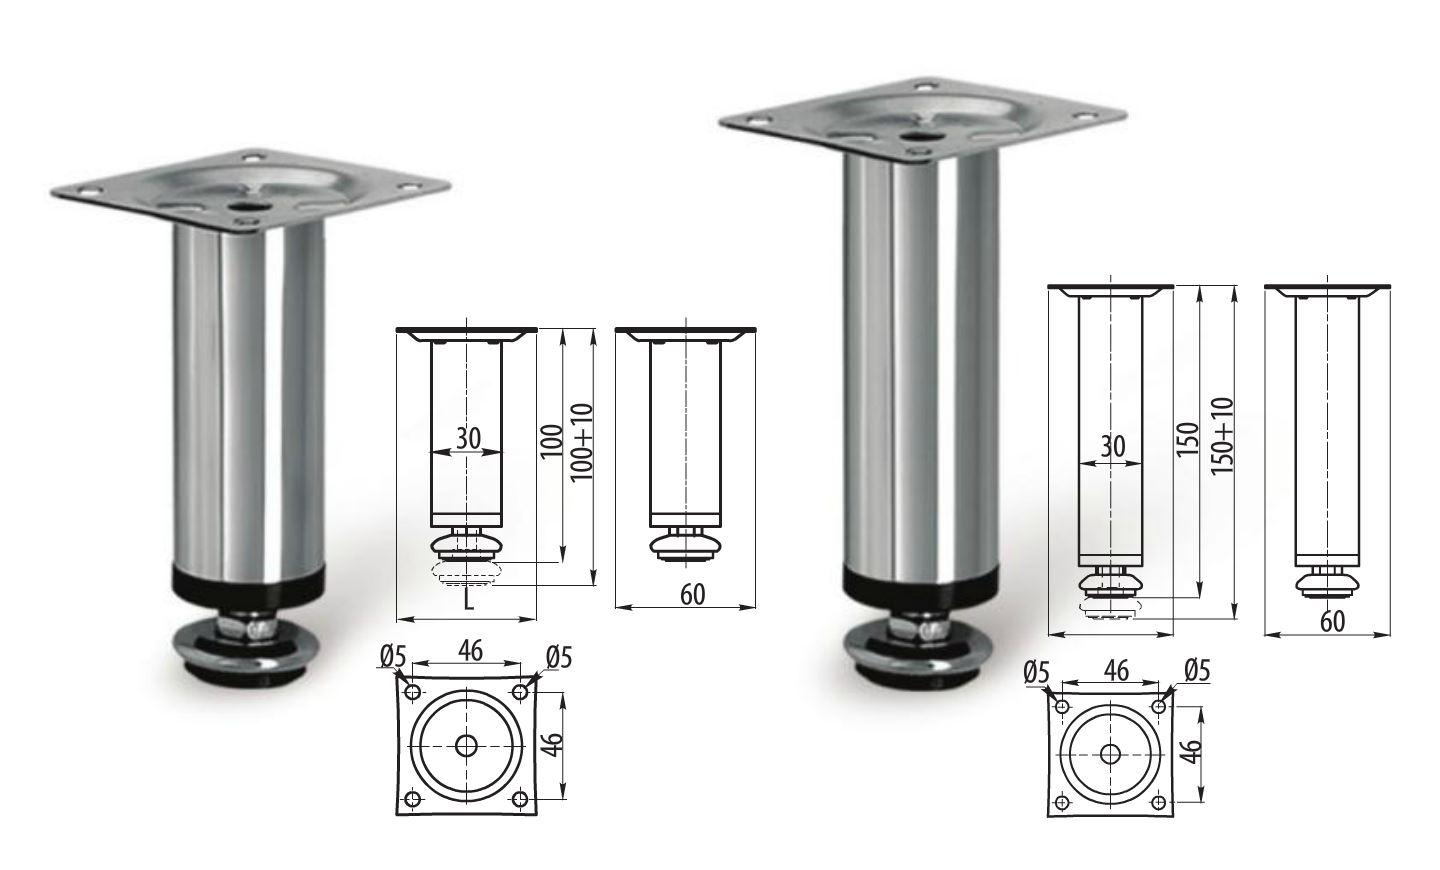 Adjustable Plinth Leg For Kitchen Cabinet/furniture/sofa Chrome Pertaining To Adjustable Sofa Legs (View 7 of 20)